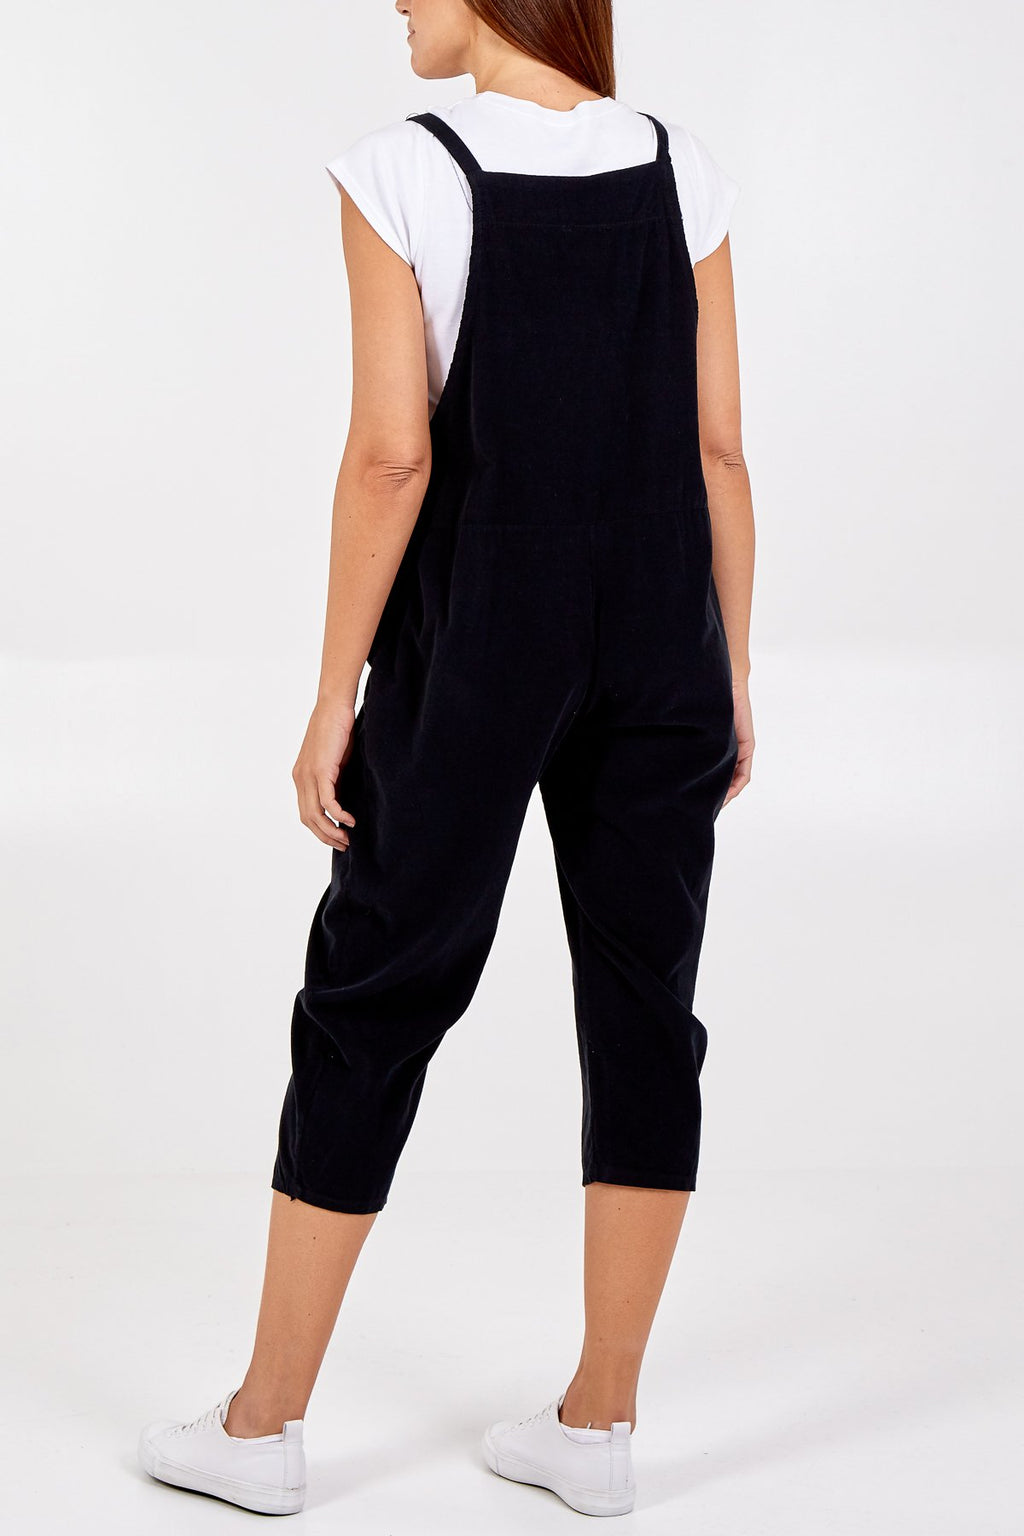 Needlecord Slouch Dungarees - Black